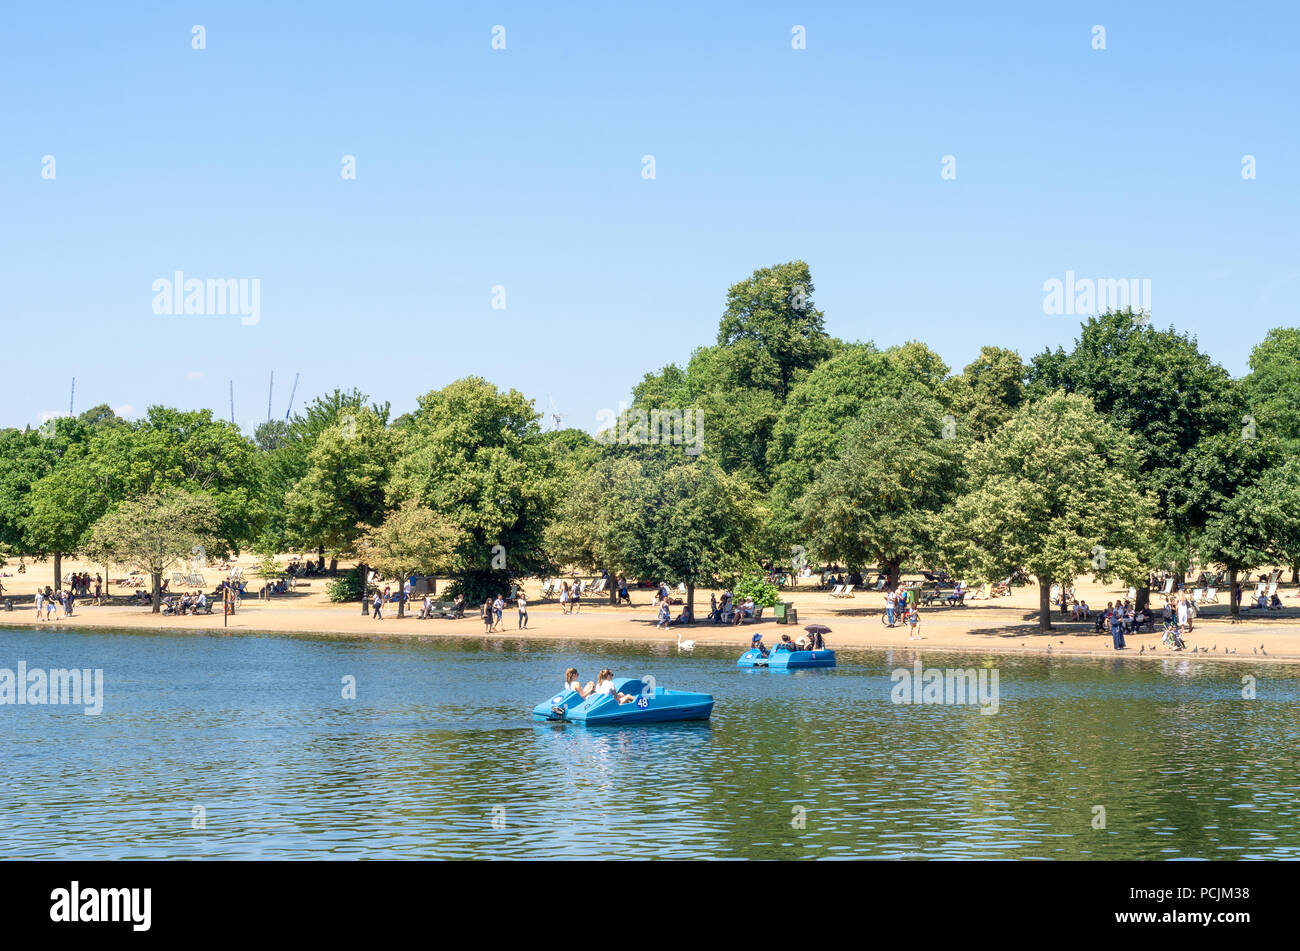 Boats on the Serpentine  at Hyde Park in during the heat wave of summer 2018 - Stock Image